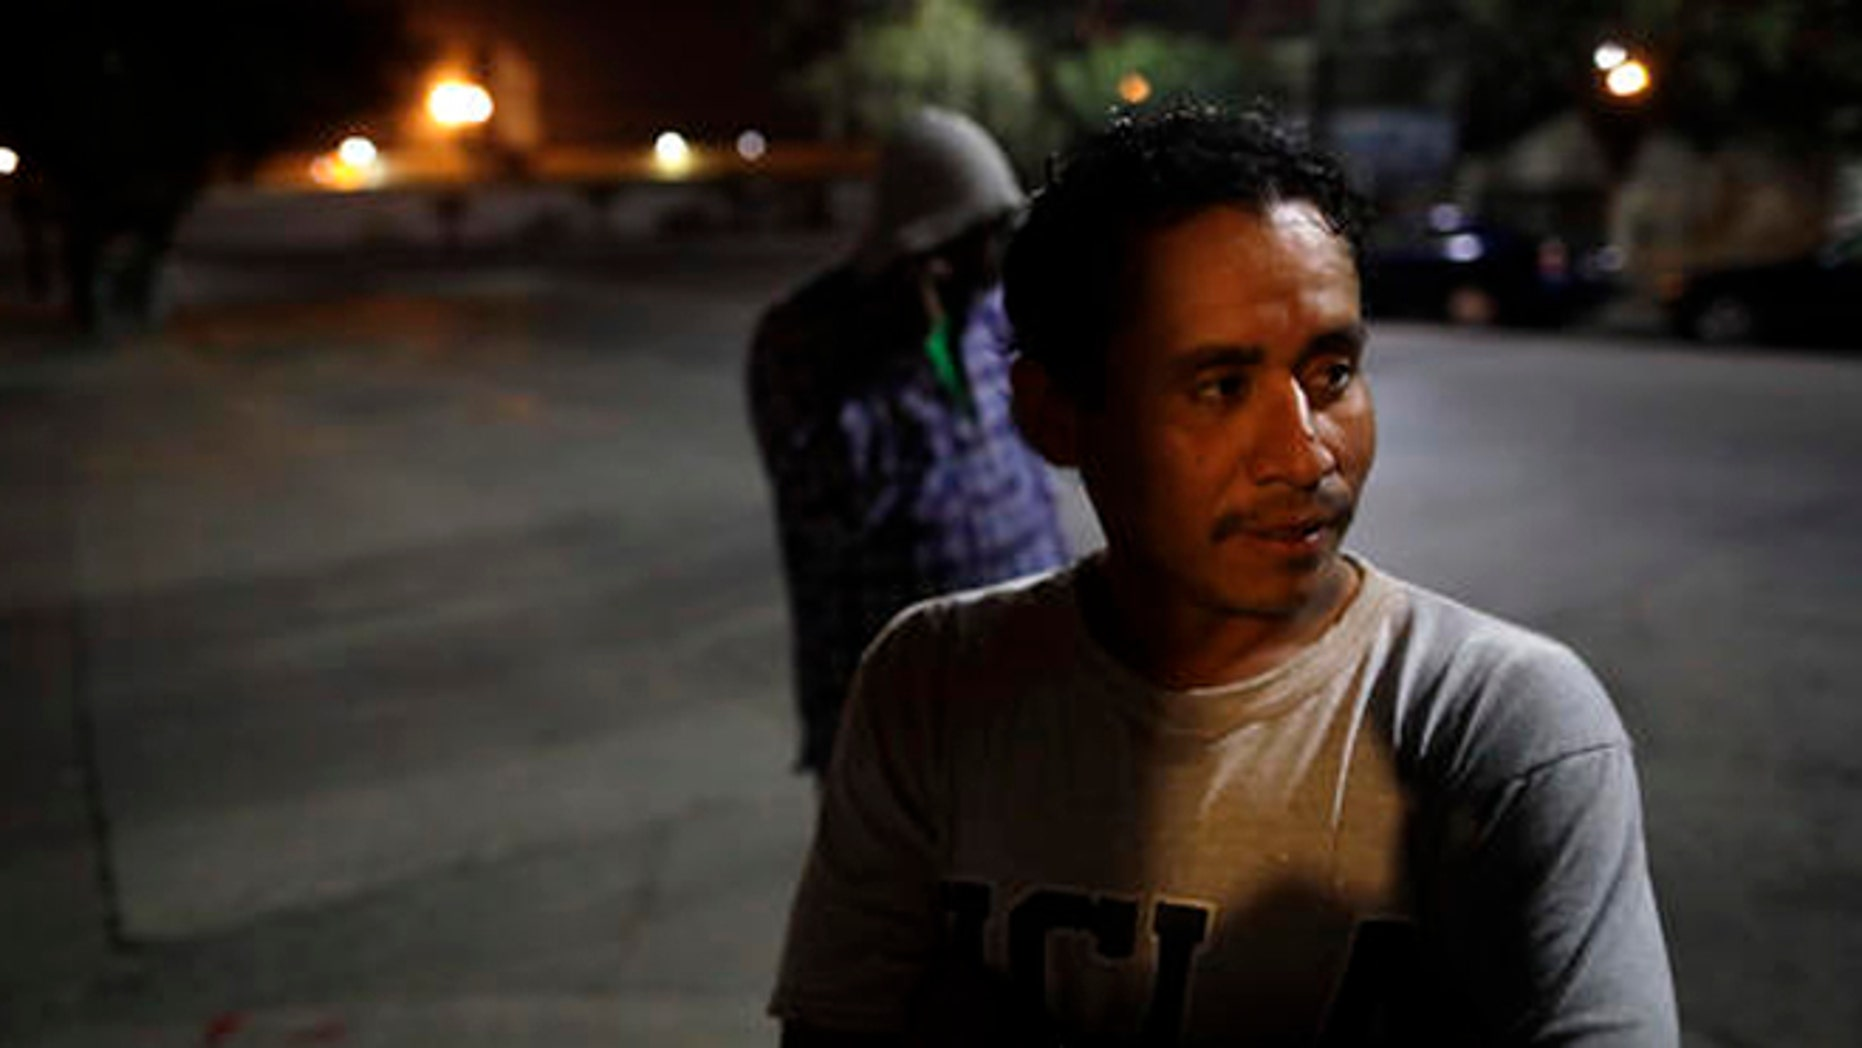 """Guatamalan Elvin Vazquez looks on from a street in front of a shelter for migrants after being deported Monday, Nov. 14, 2016, in Tijuana, Mexico. Vazquez spent more than 13 years in the United States before being deported. In an interview with CBS' """"60 Minutes"""" broadcast Sunday night, President-elect Donald Trump said he would focus on deporting people with criminal records beyond their immigration status. (AP Photo/Gregory Bull)"""